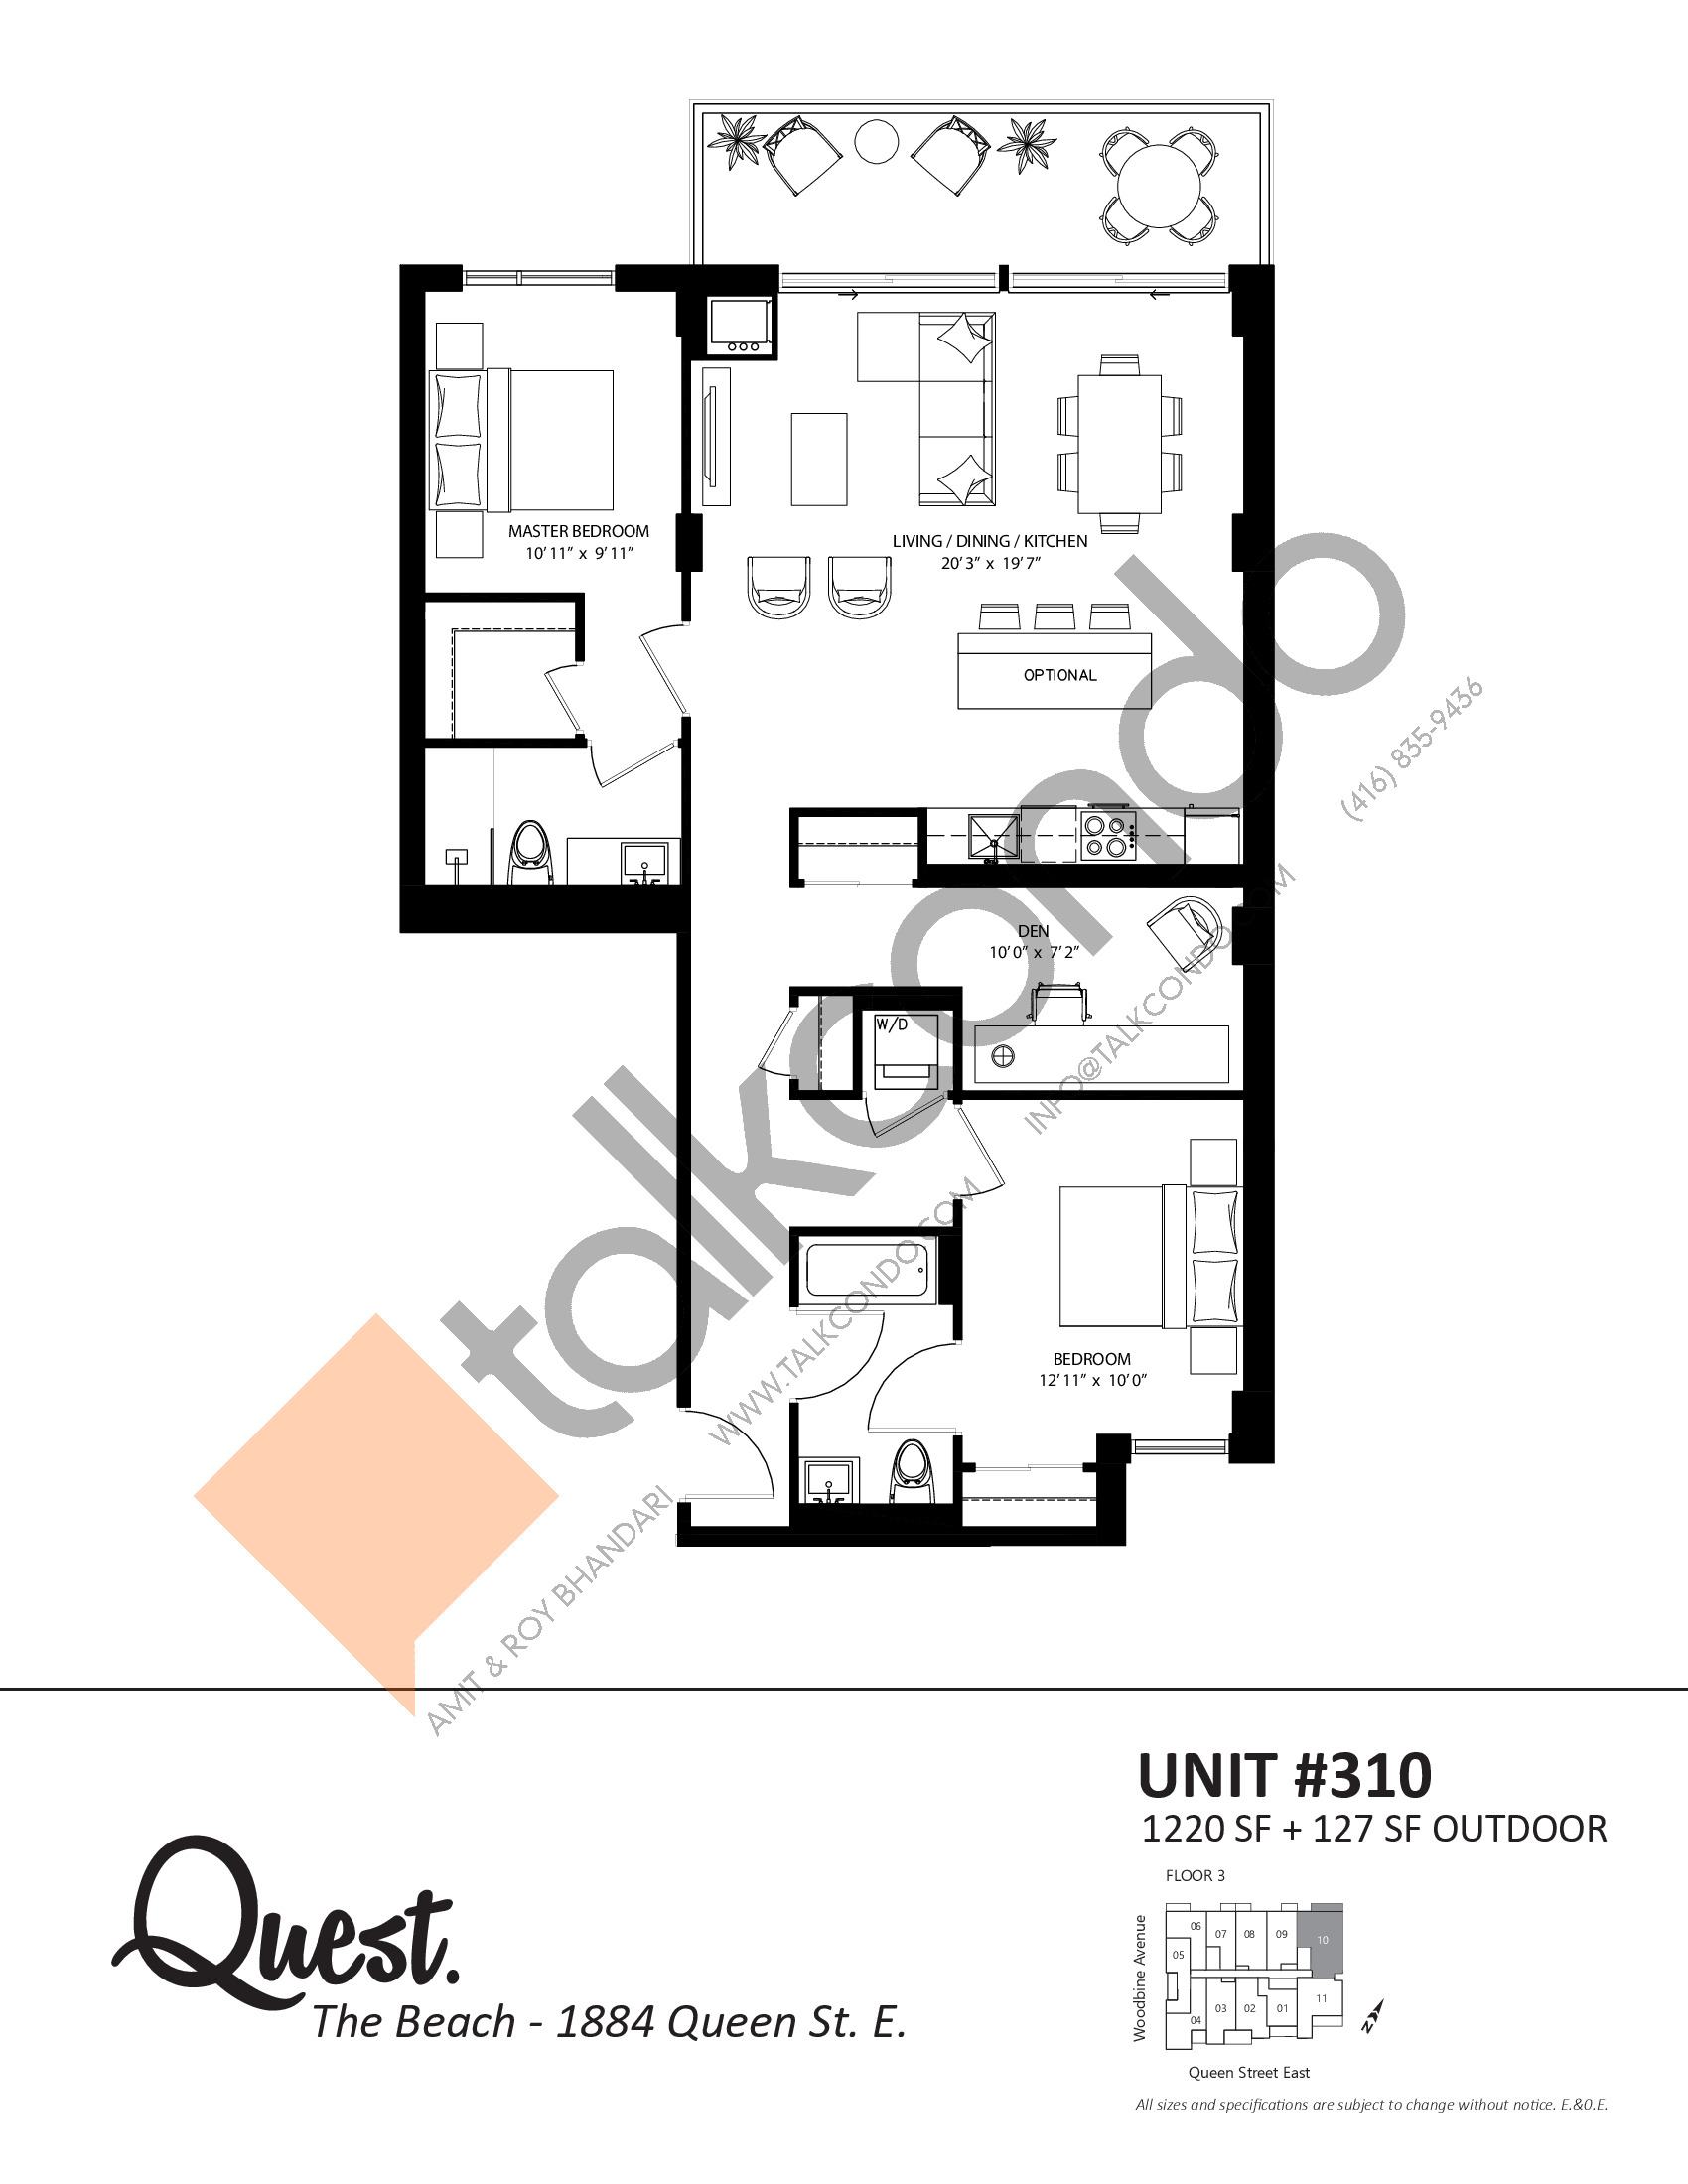 Unit 310 Floor Plan at Heartwood the Beach Condos - 1220 sq.ft